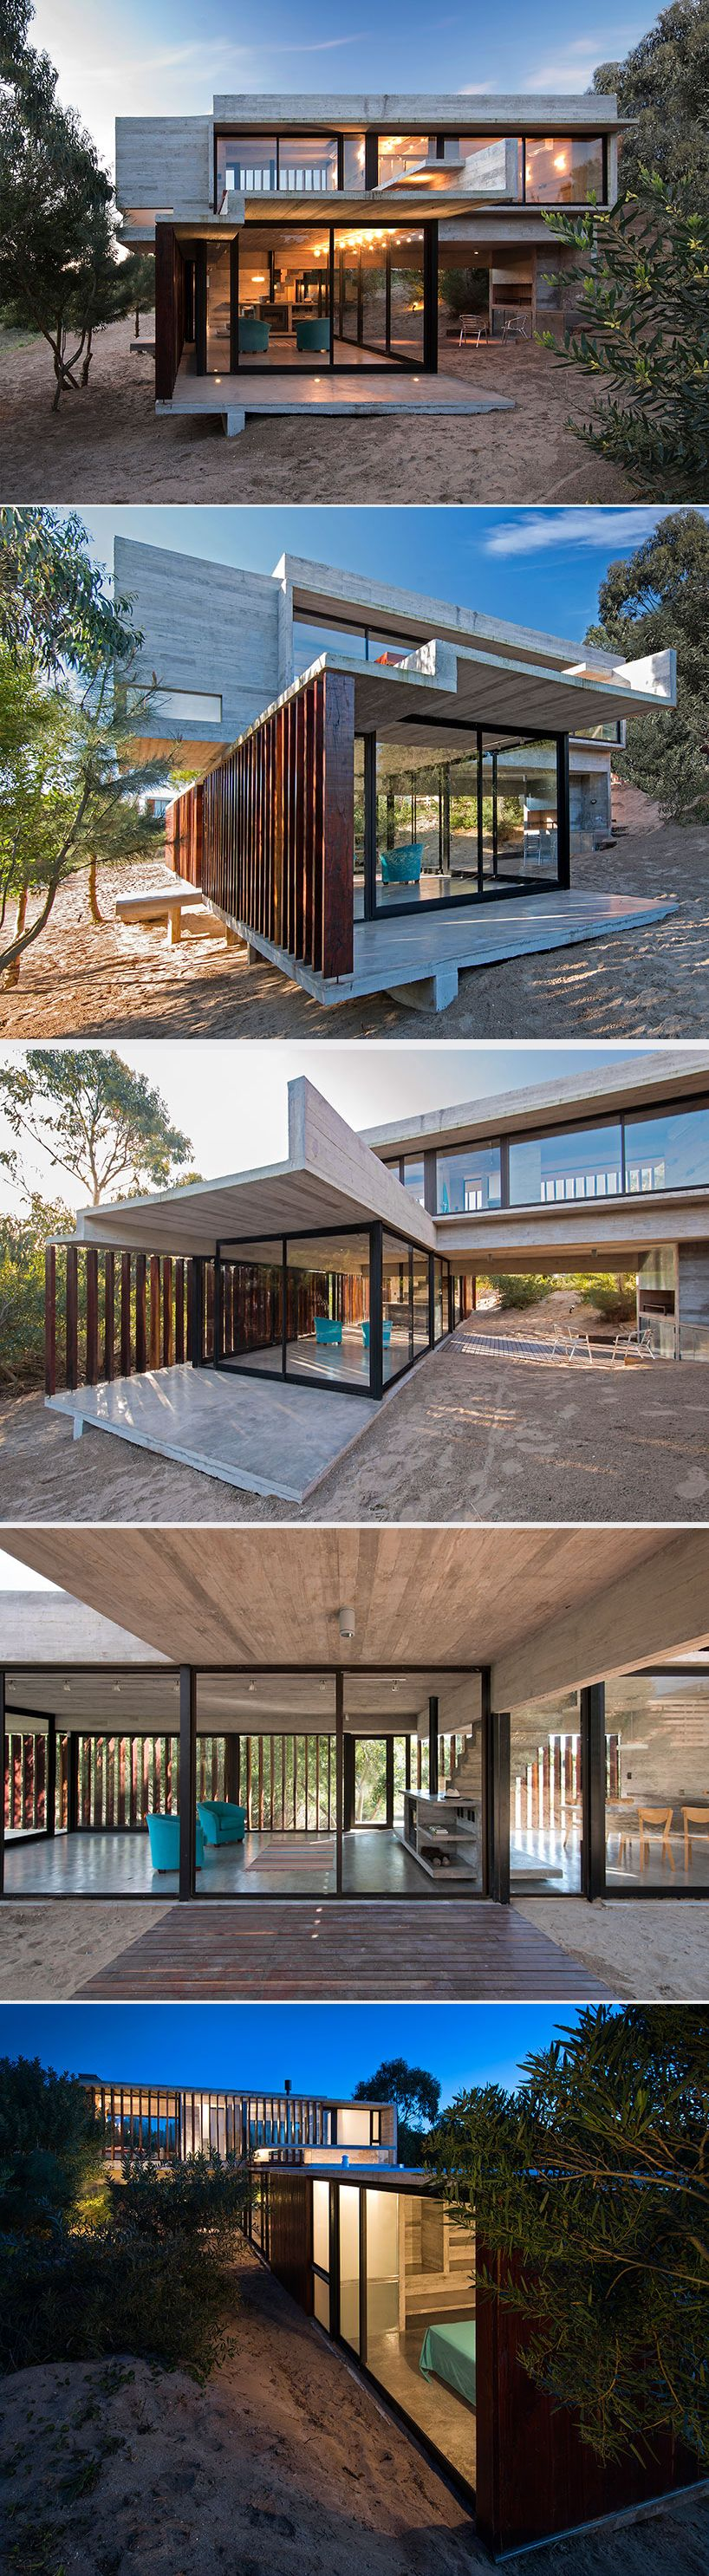 Could be built with shipping containers, luciano kruk forms MR house of folded concrete and wooden louvers